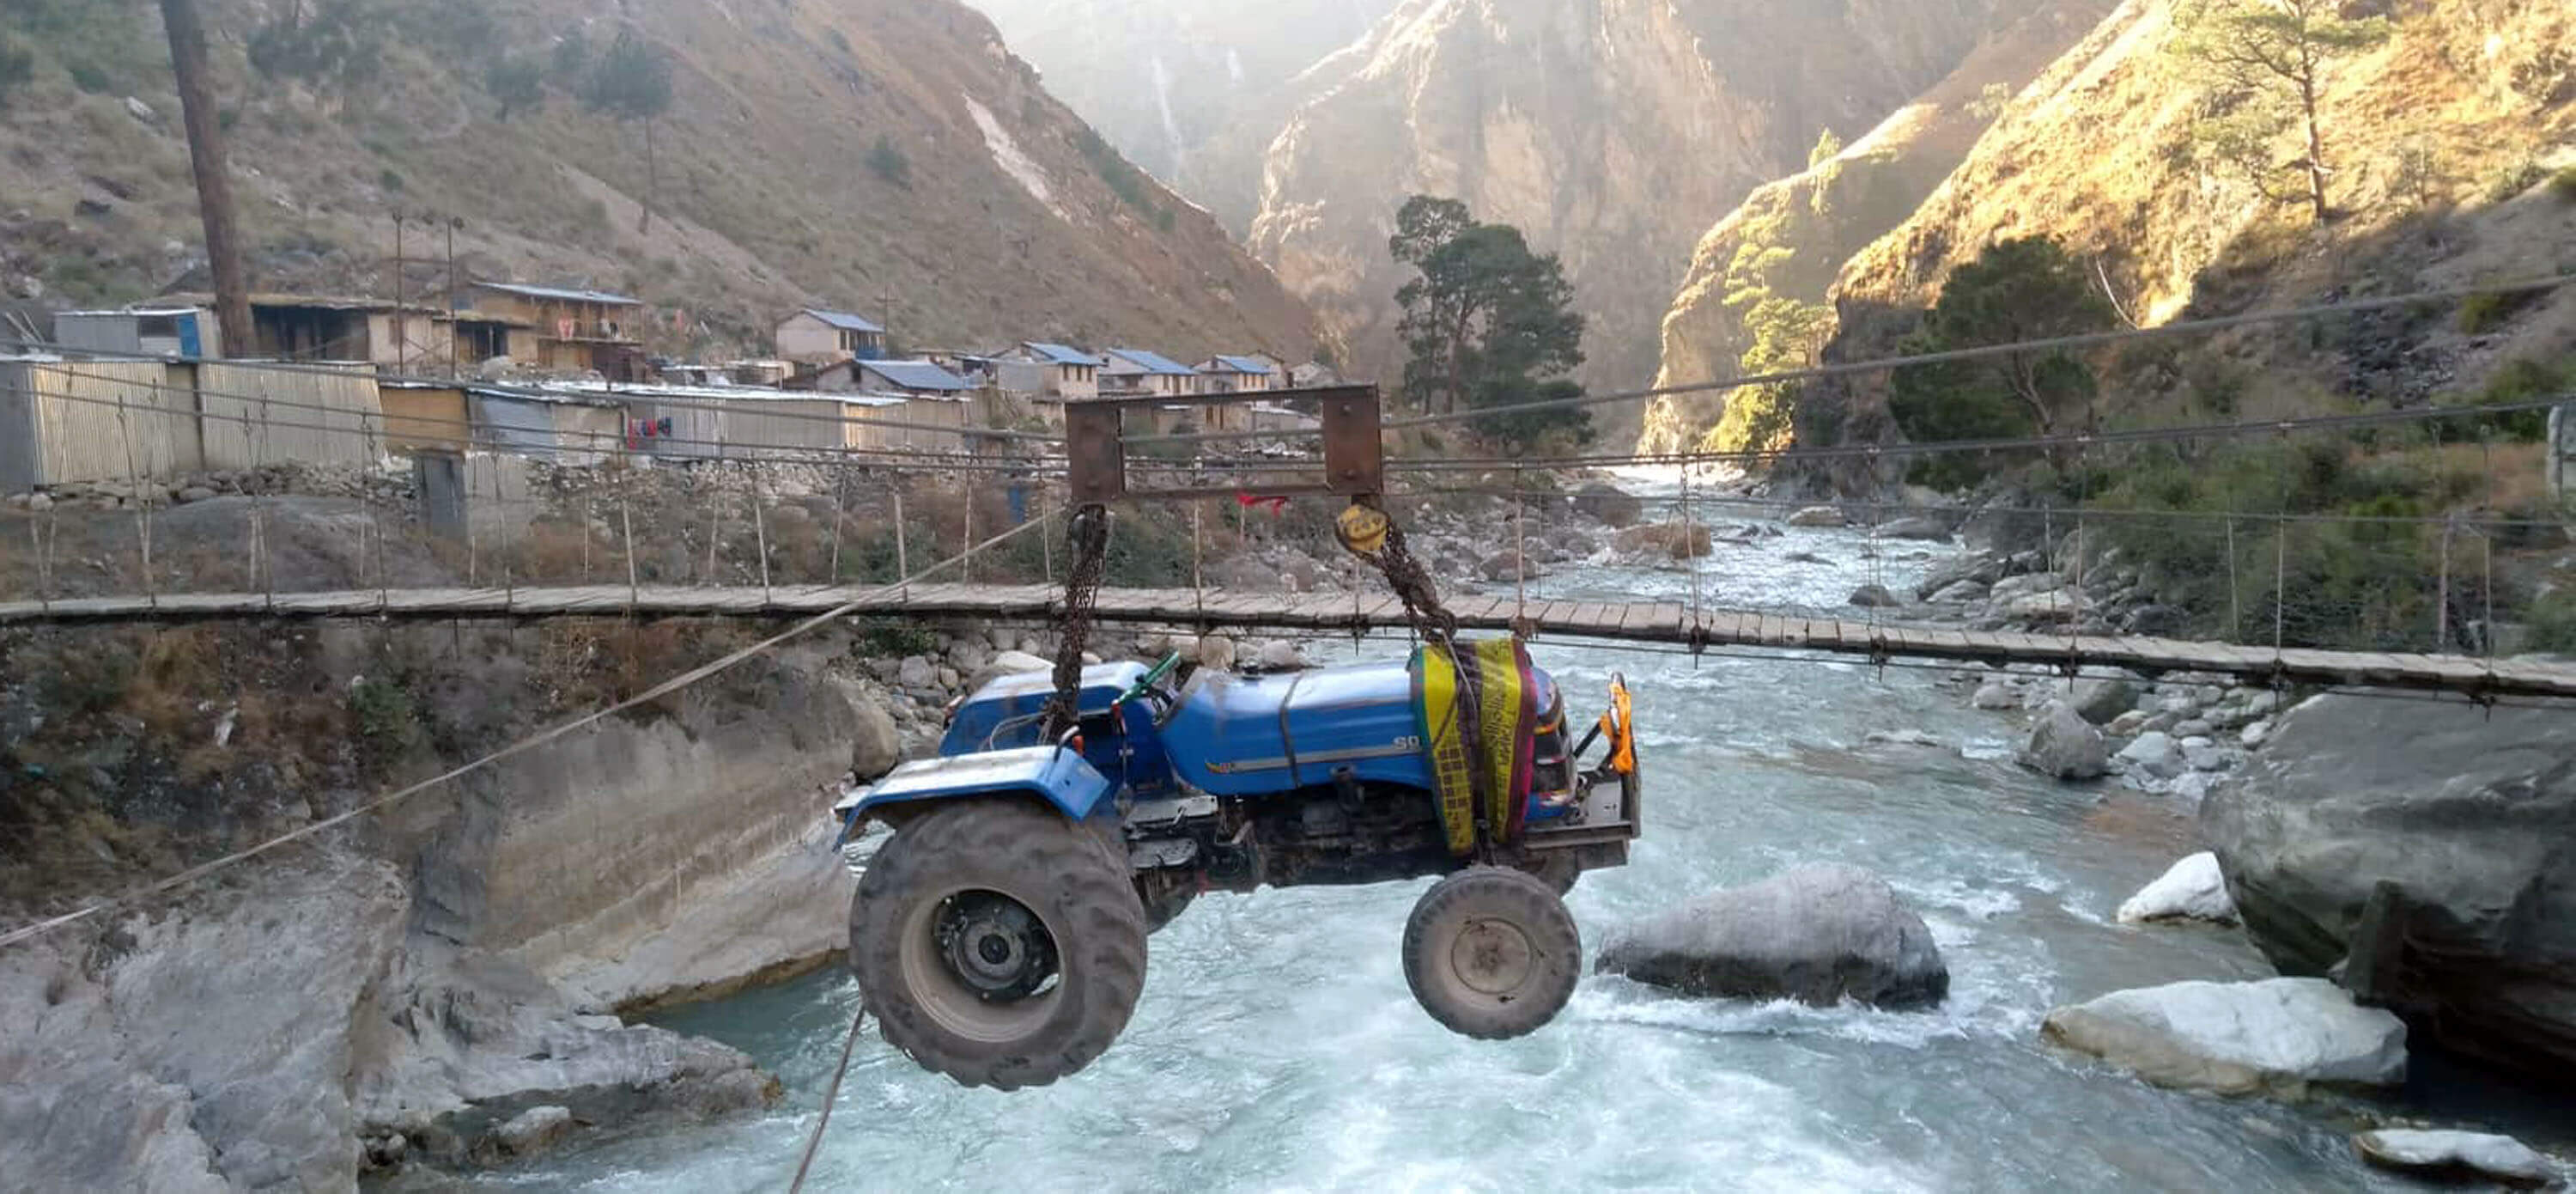 A manual pulley is used to transport part of a tractor over the Bheri river in Khadang, Tripurakot of Dolpa, a remote mountain district with very few roads and bridges.